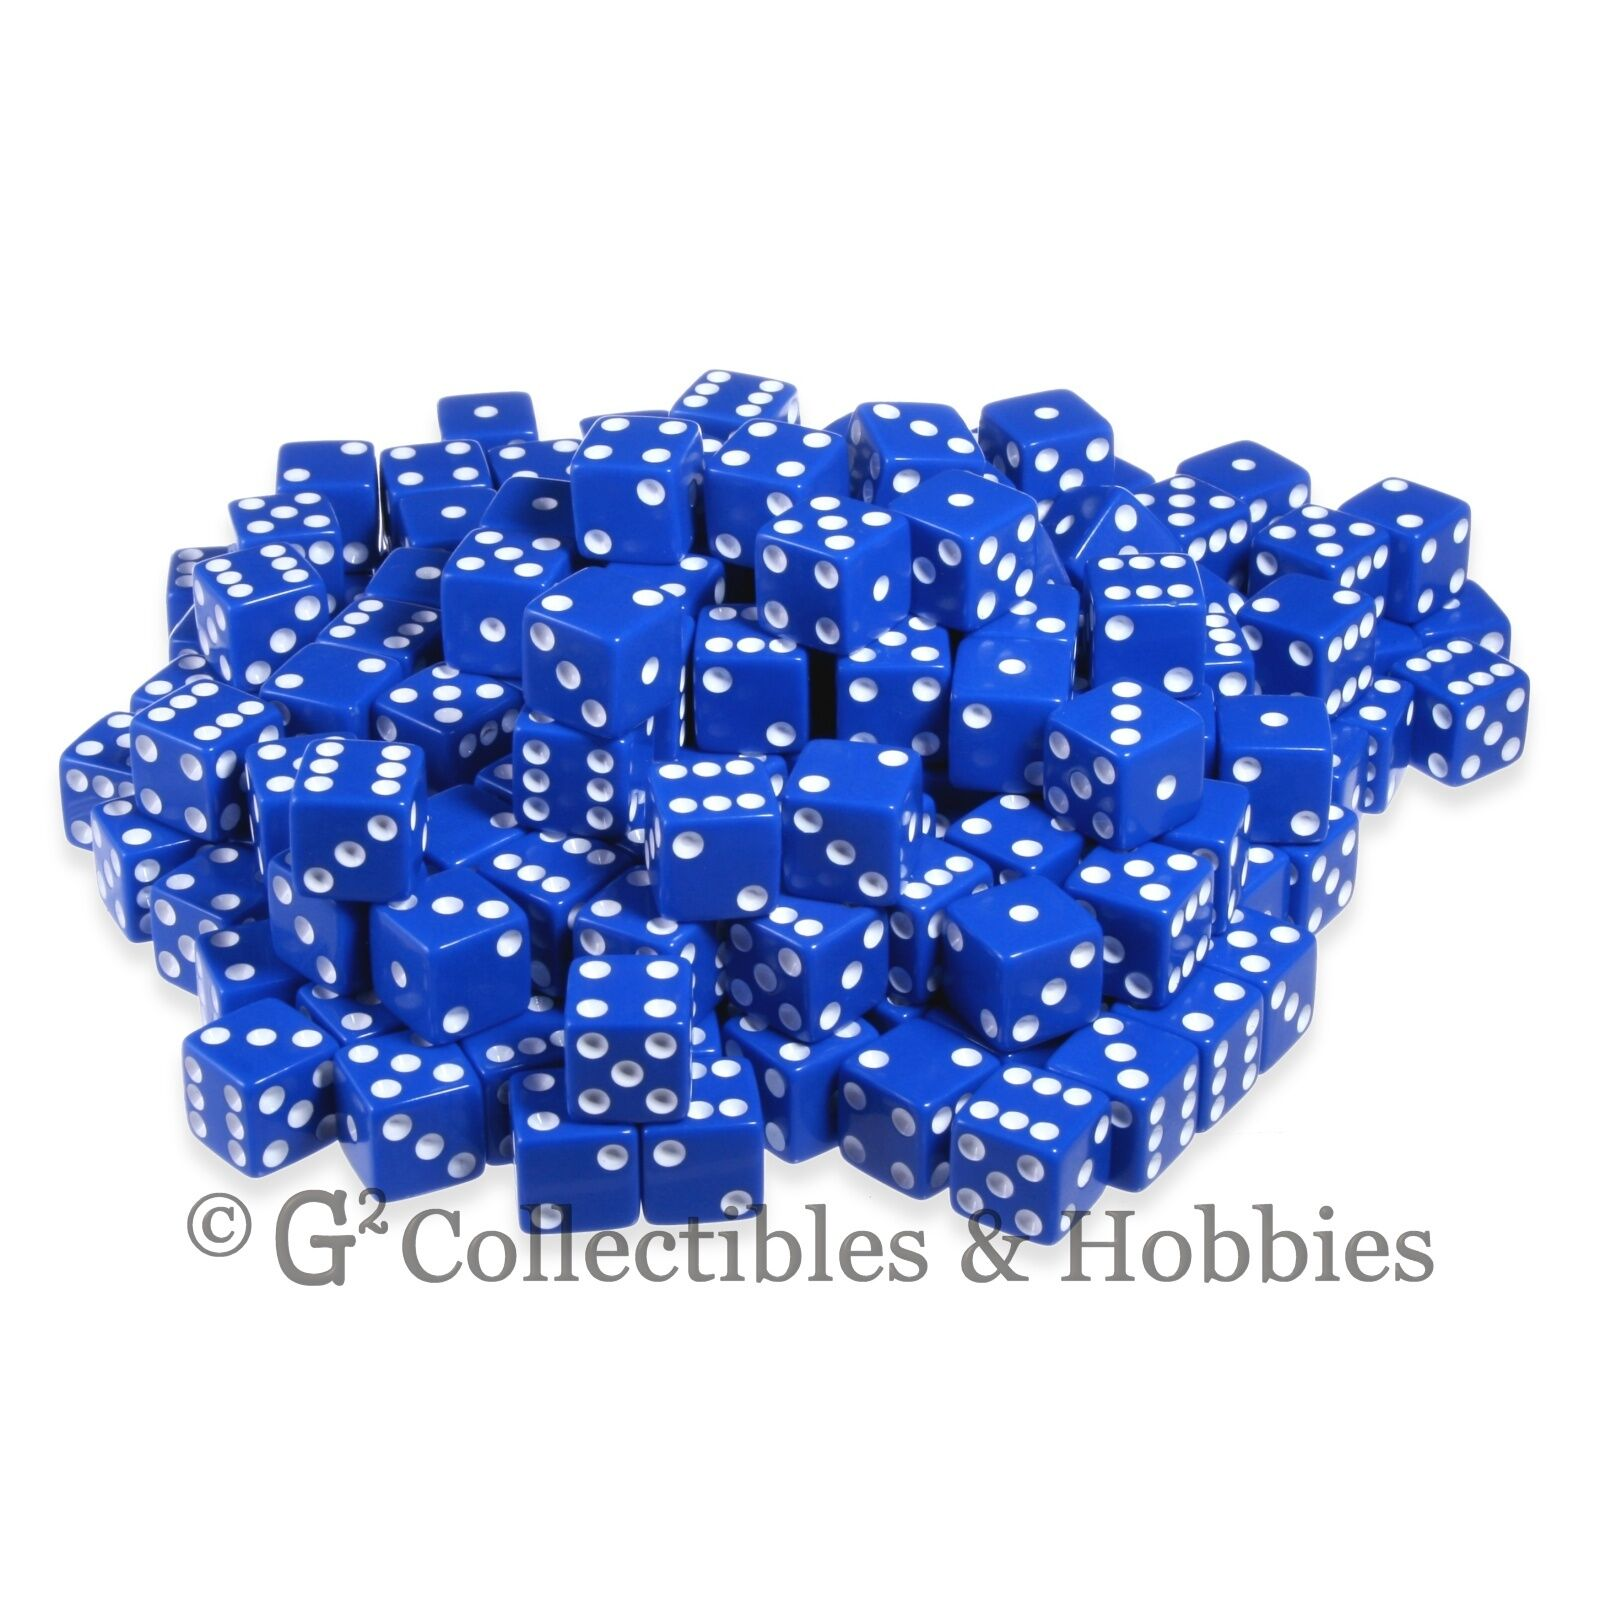 NEW 200 16mm 5 8 inch bluee w  White Pips D6 Six Sided Game Dice Bulk Koplow